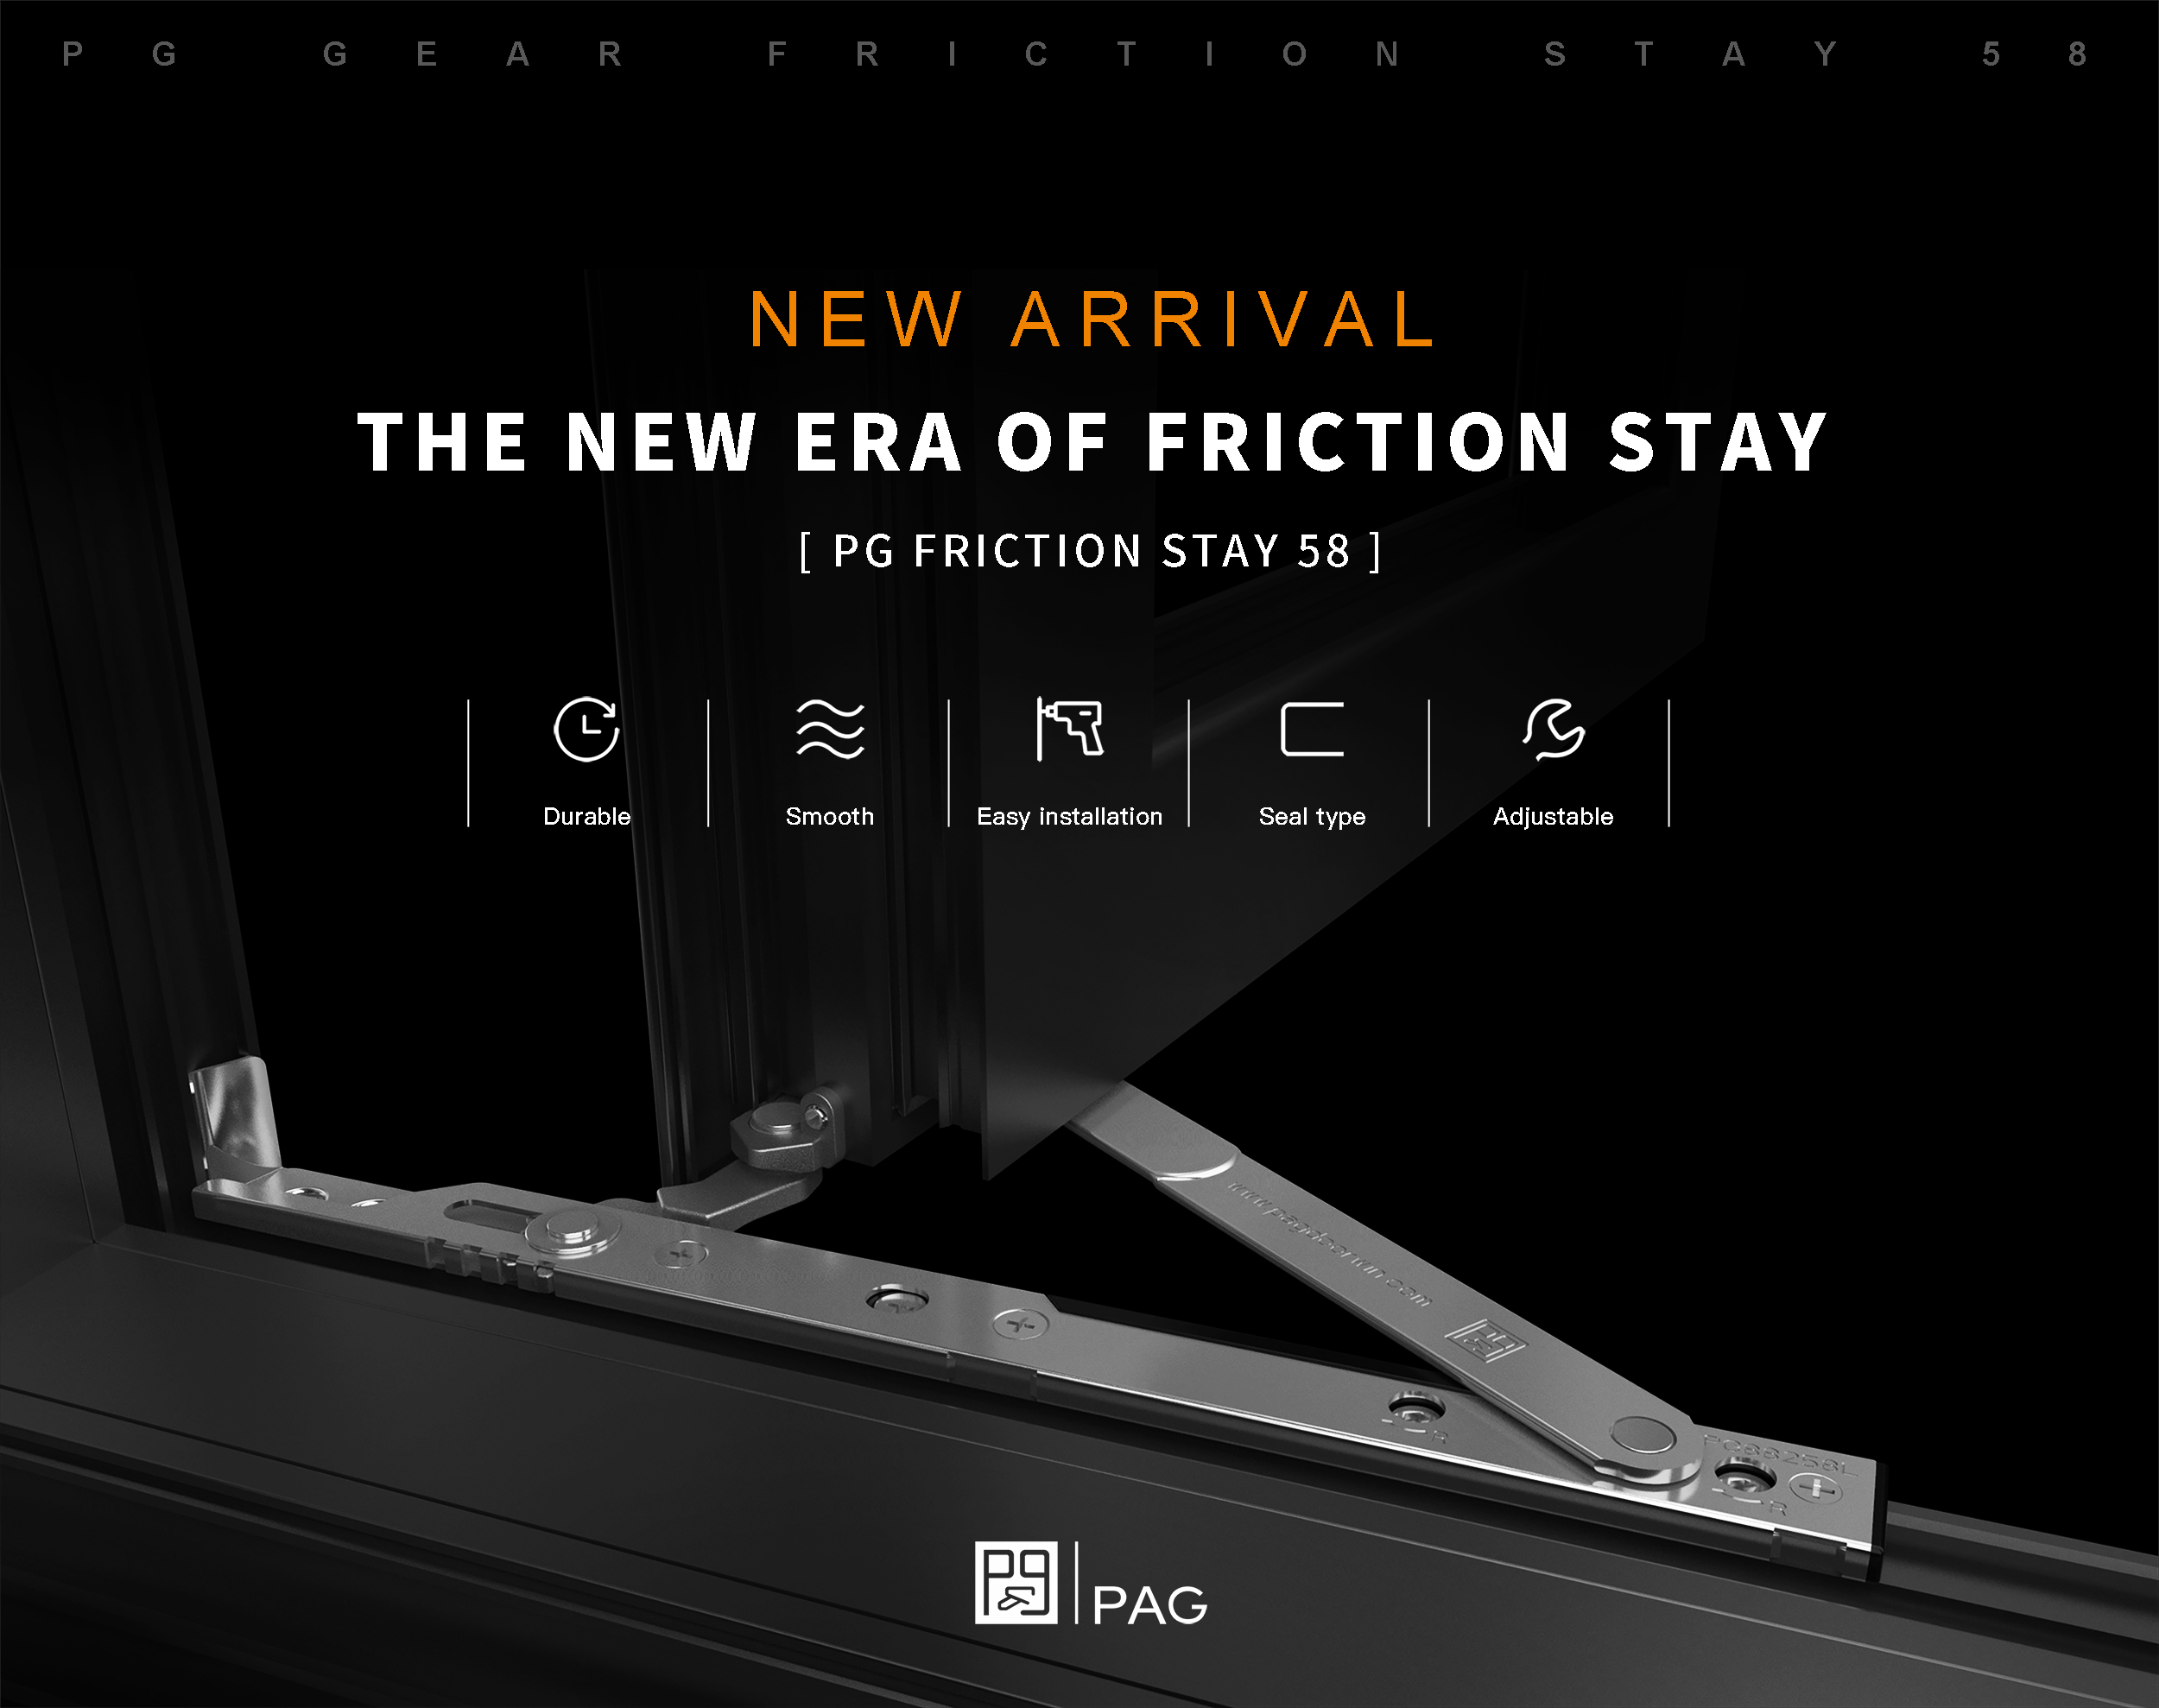 The new era of friction stay--[PG friction stay 58] New Arrival